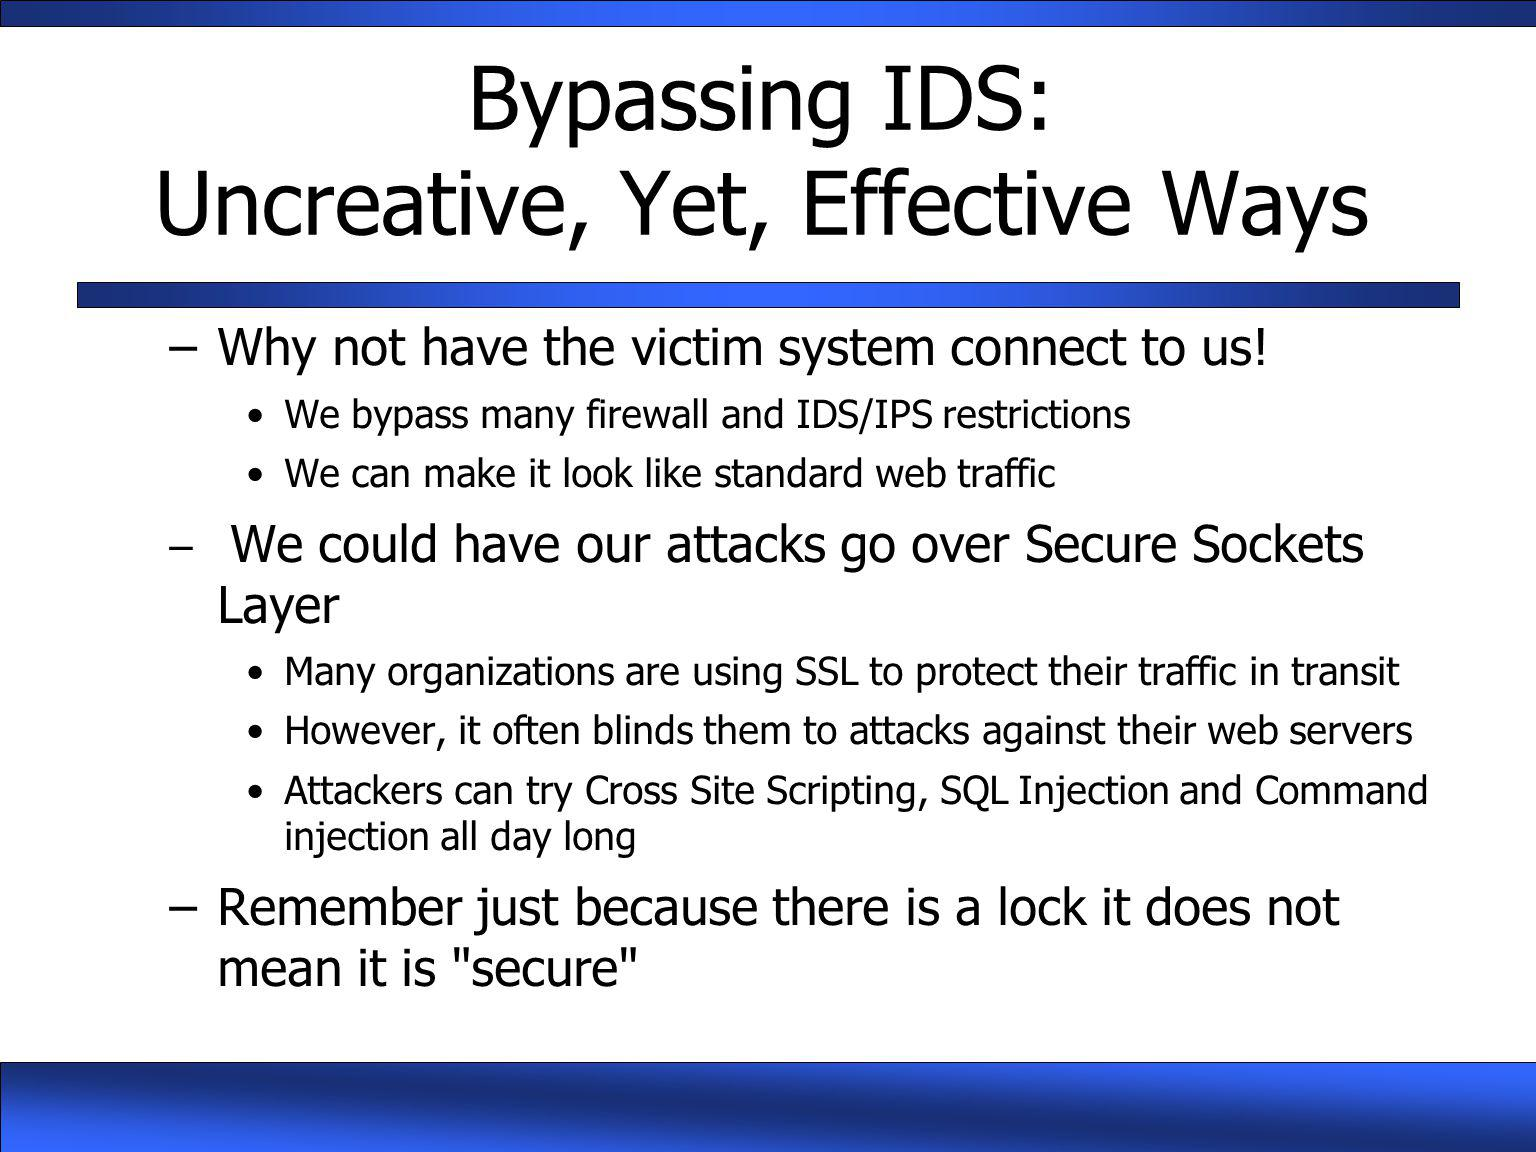 Bypassing IDS: Uncreative, Yet, Effective Ways